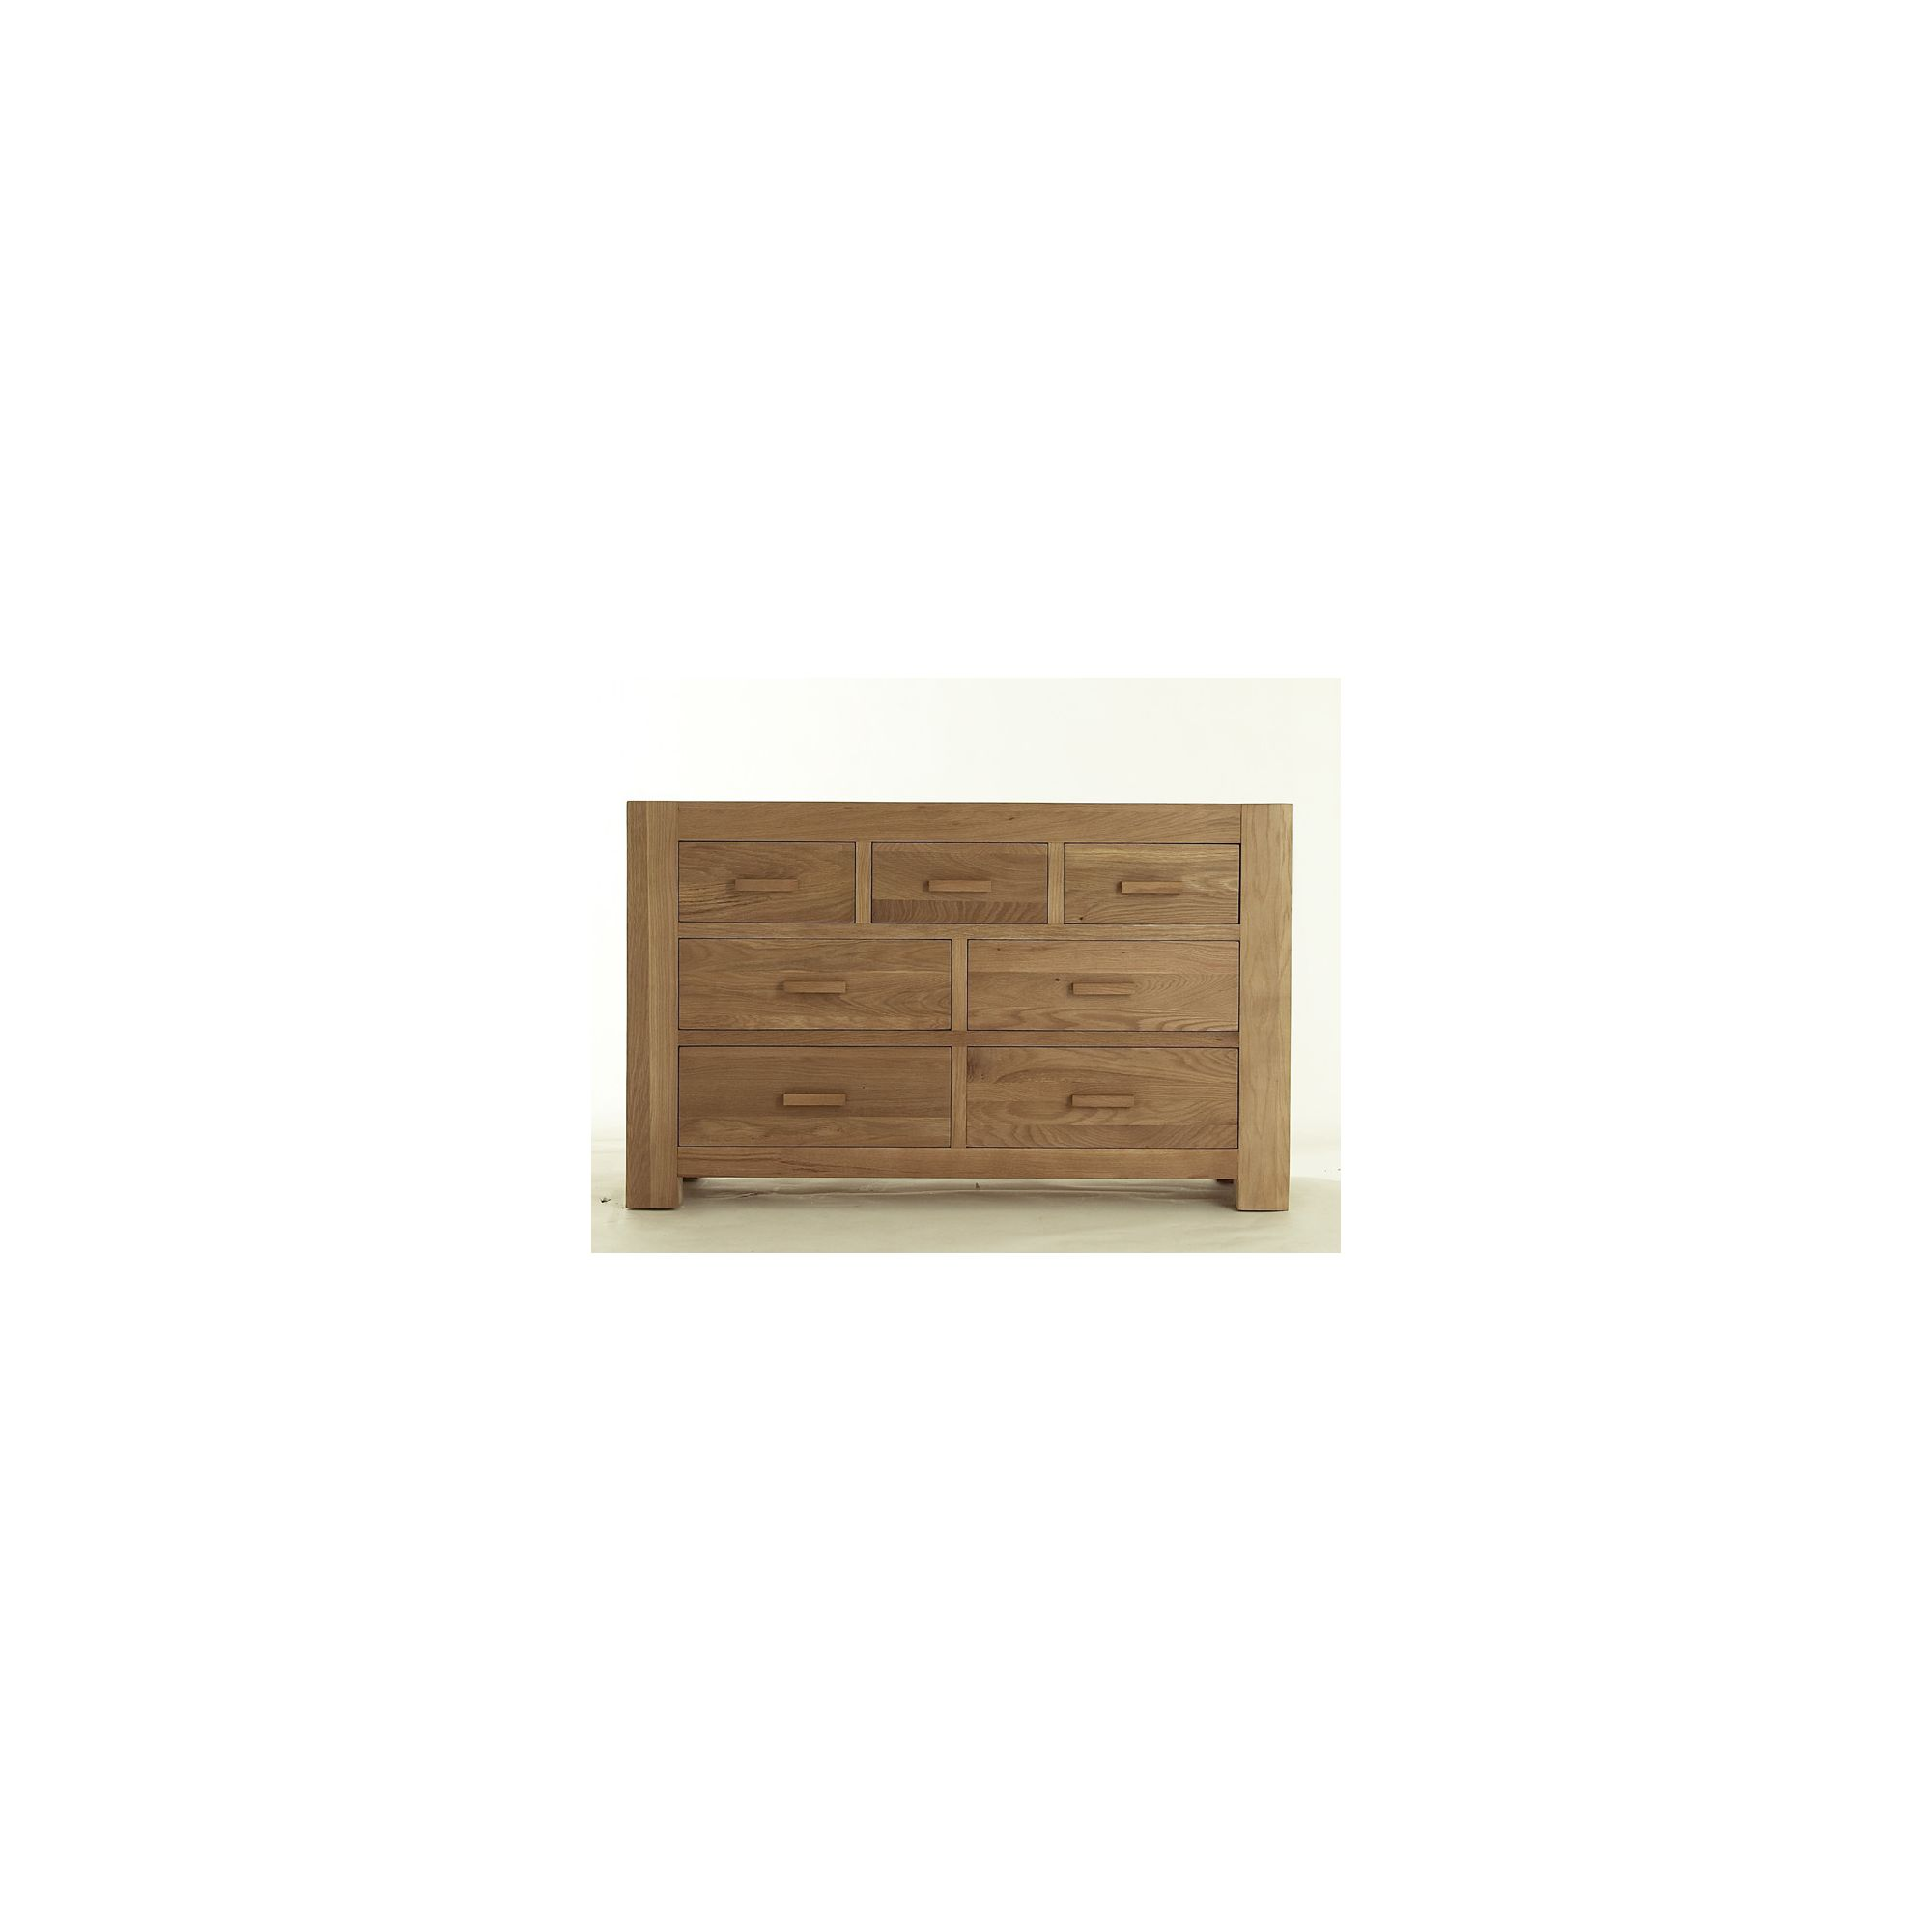 Thorndon Block Bedroom 3 Over 4 Drawer Chest in Natural Matured Oak at Tesco Direct